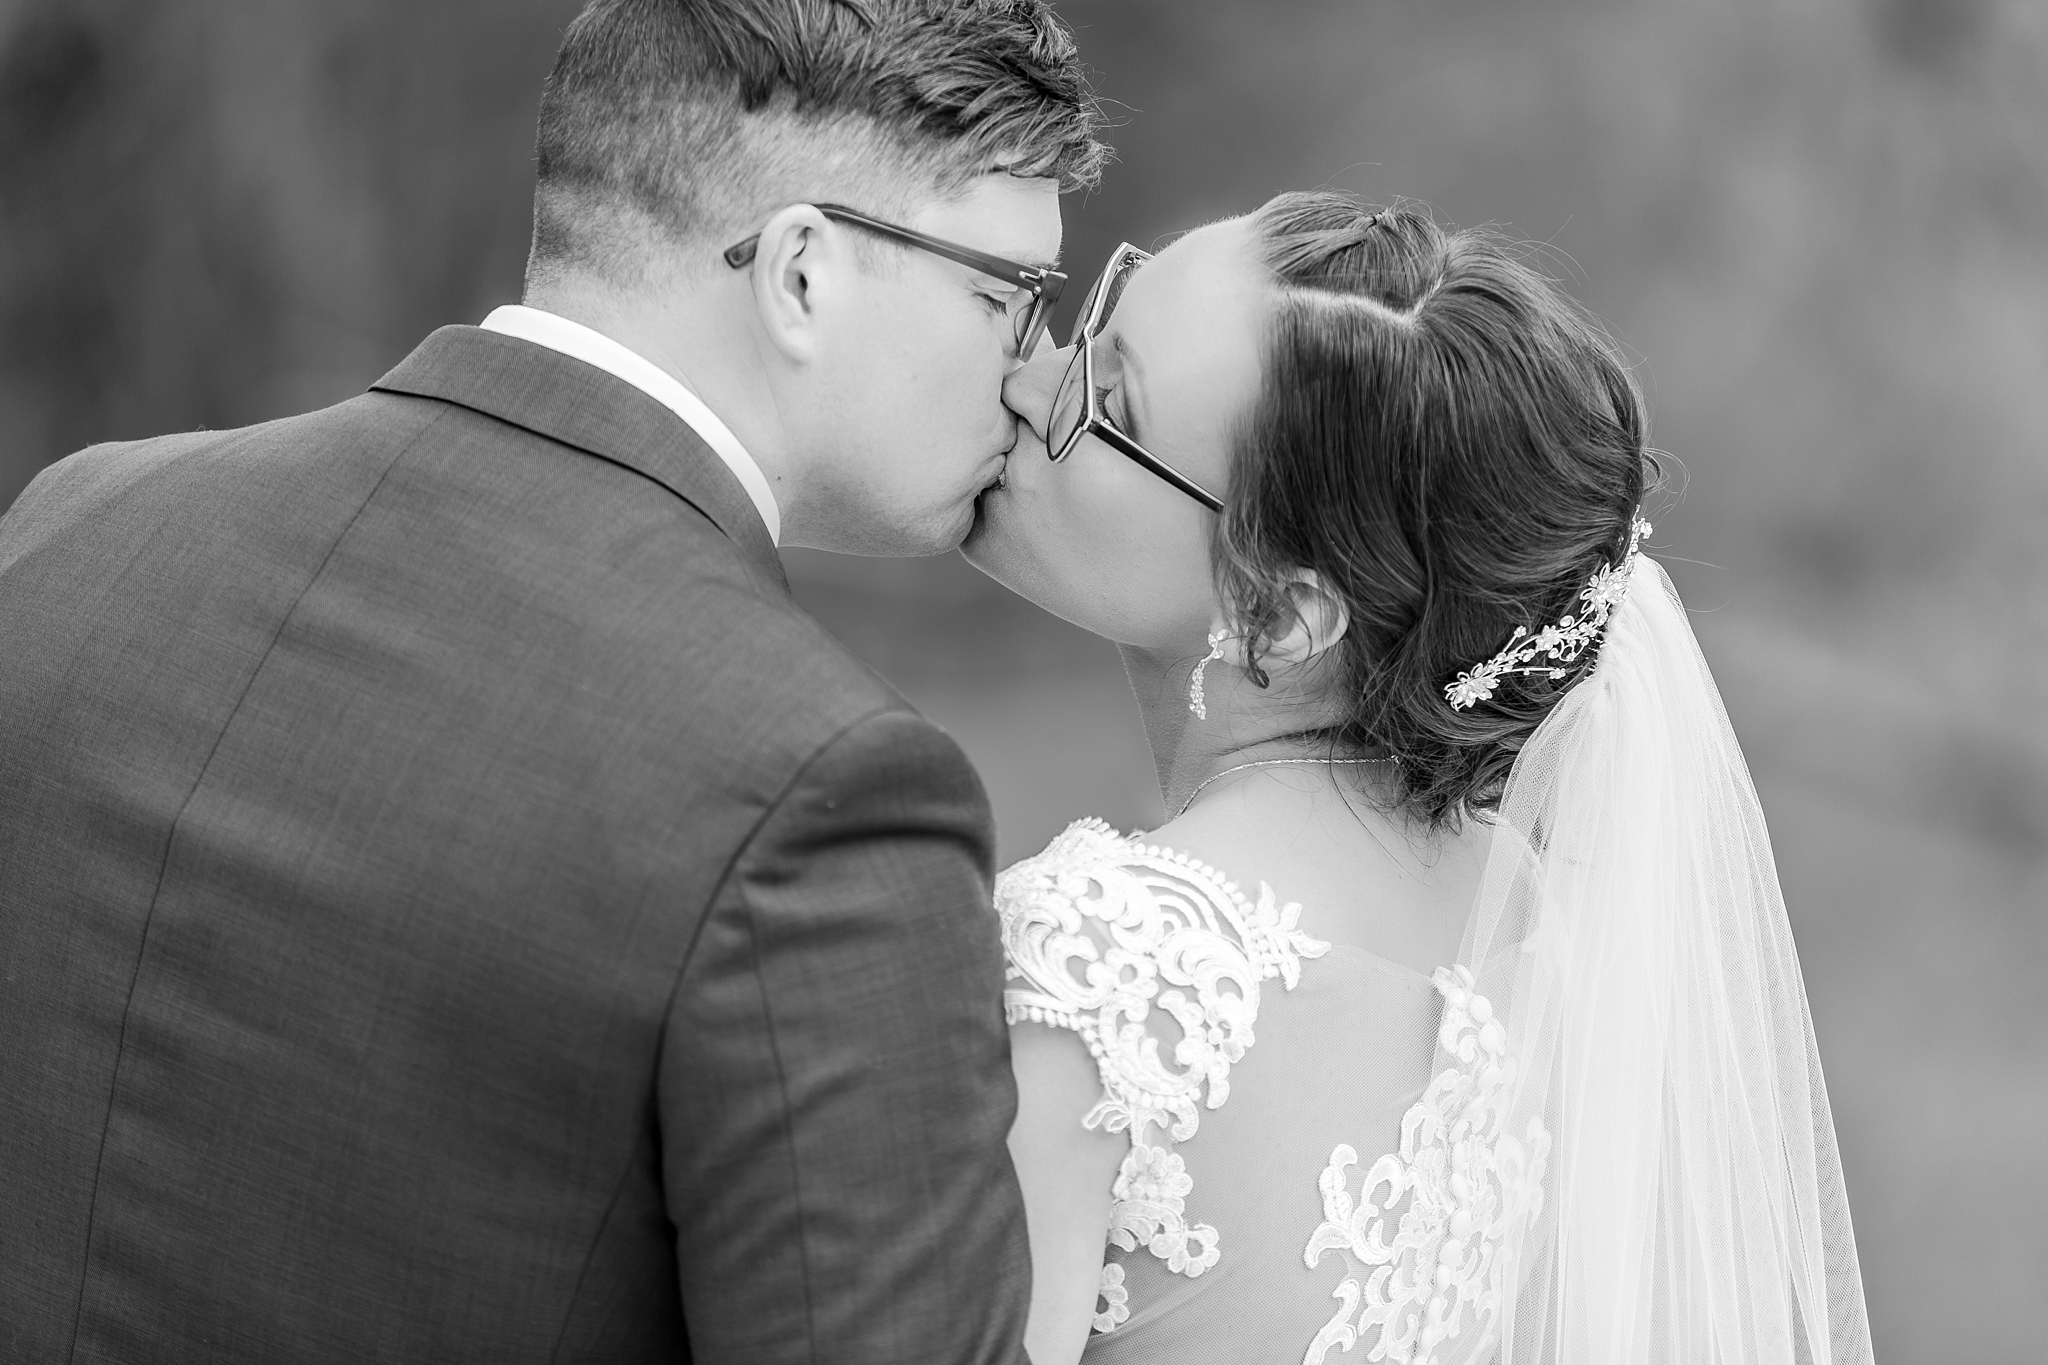 classic-timeless-candid-wedding-photos-in-grosse-ile-and-trenton-michigan-by-courtney-carolyn-photography_0080.jpg